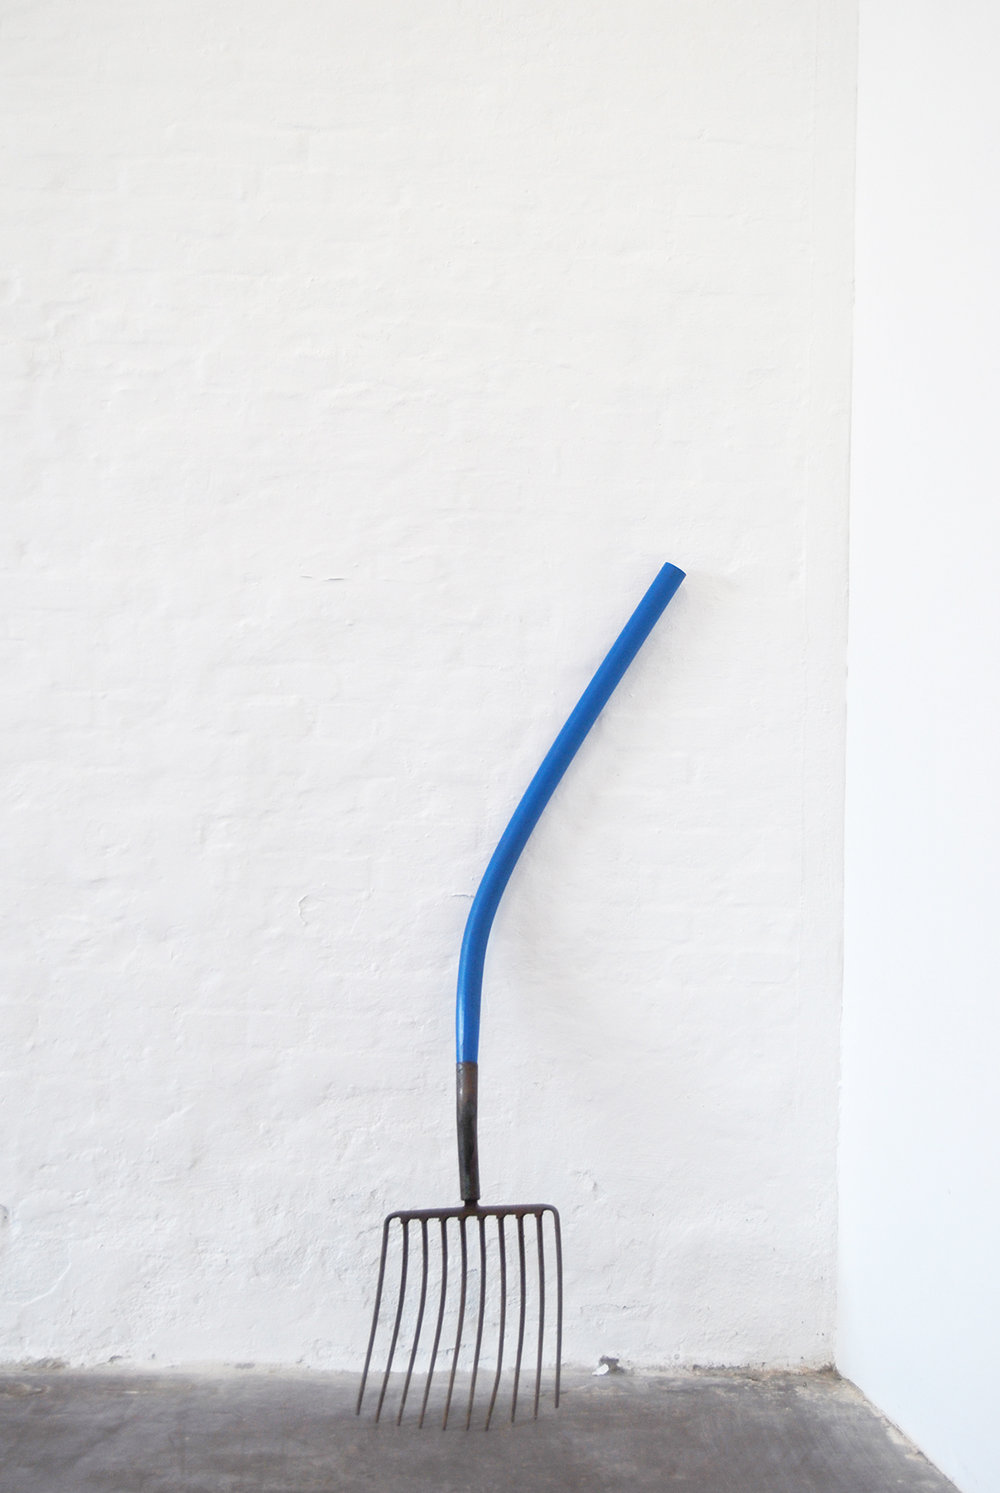 Oscar Yran, Synthetic Fork, 2018 (Hdpe-plastik, steel, cyan pigment). Photo: Oscar Yran.